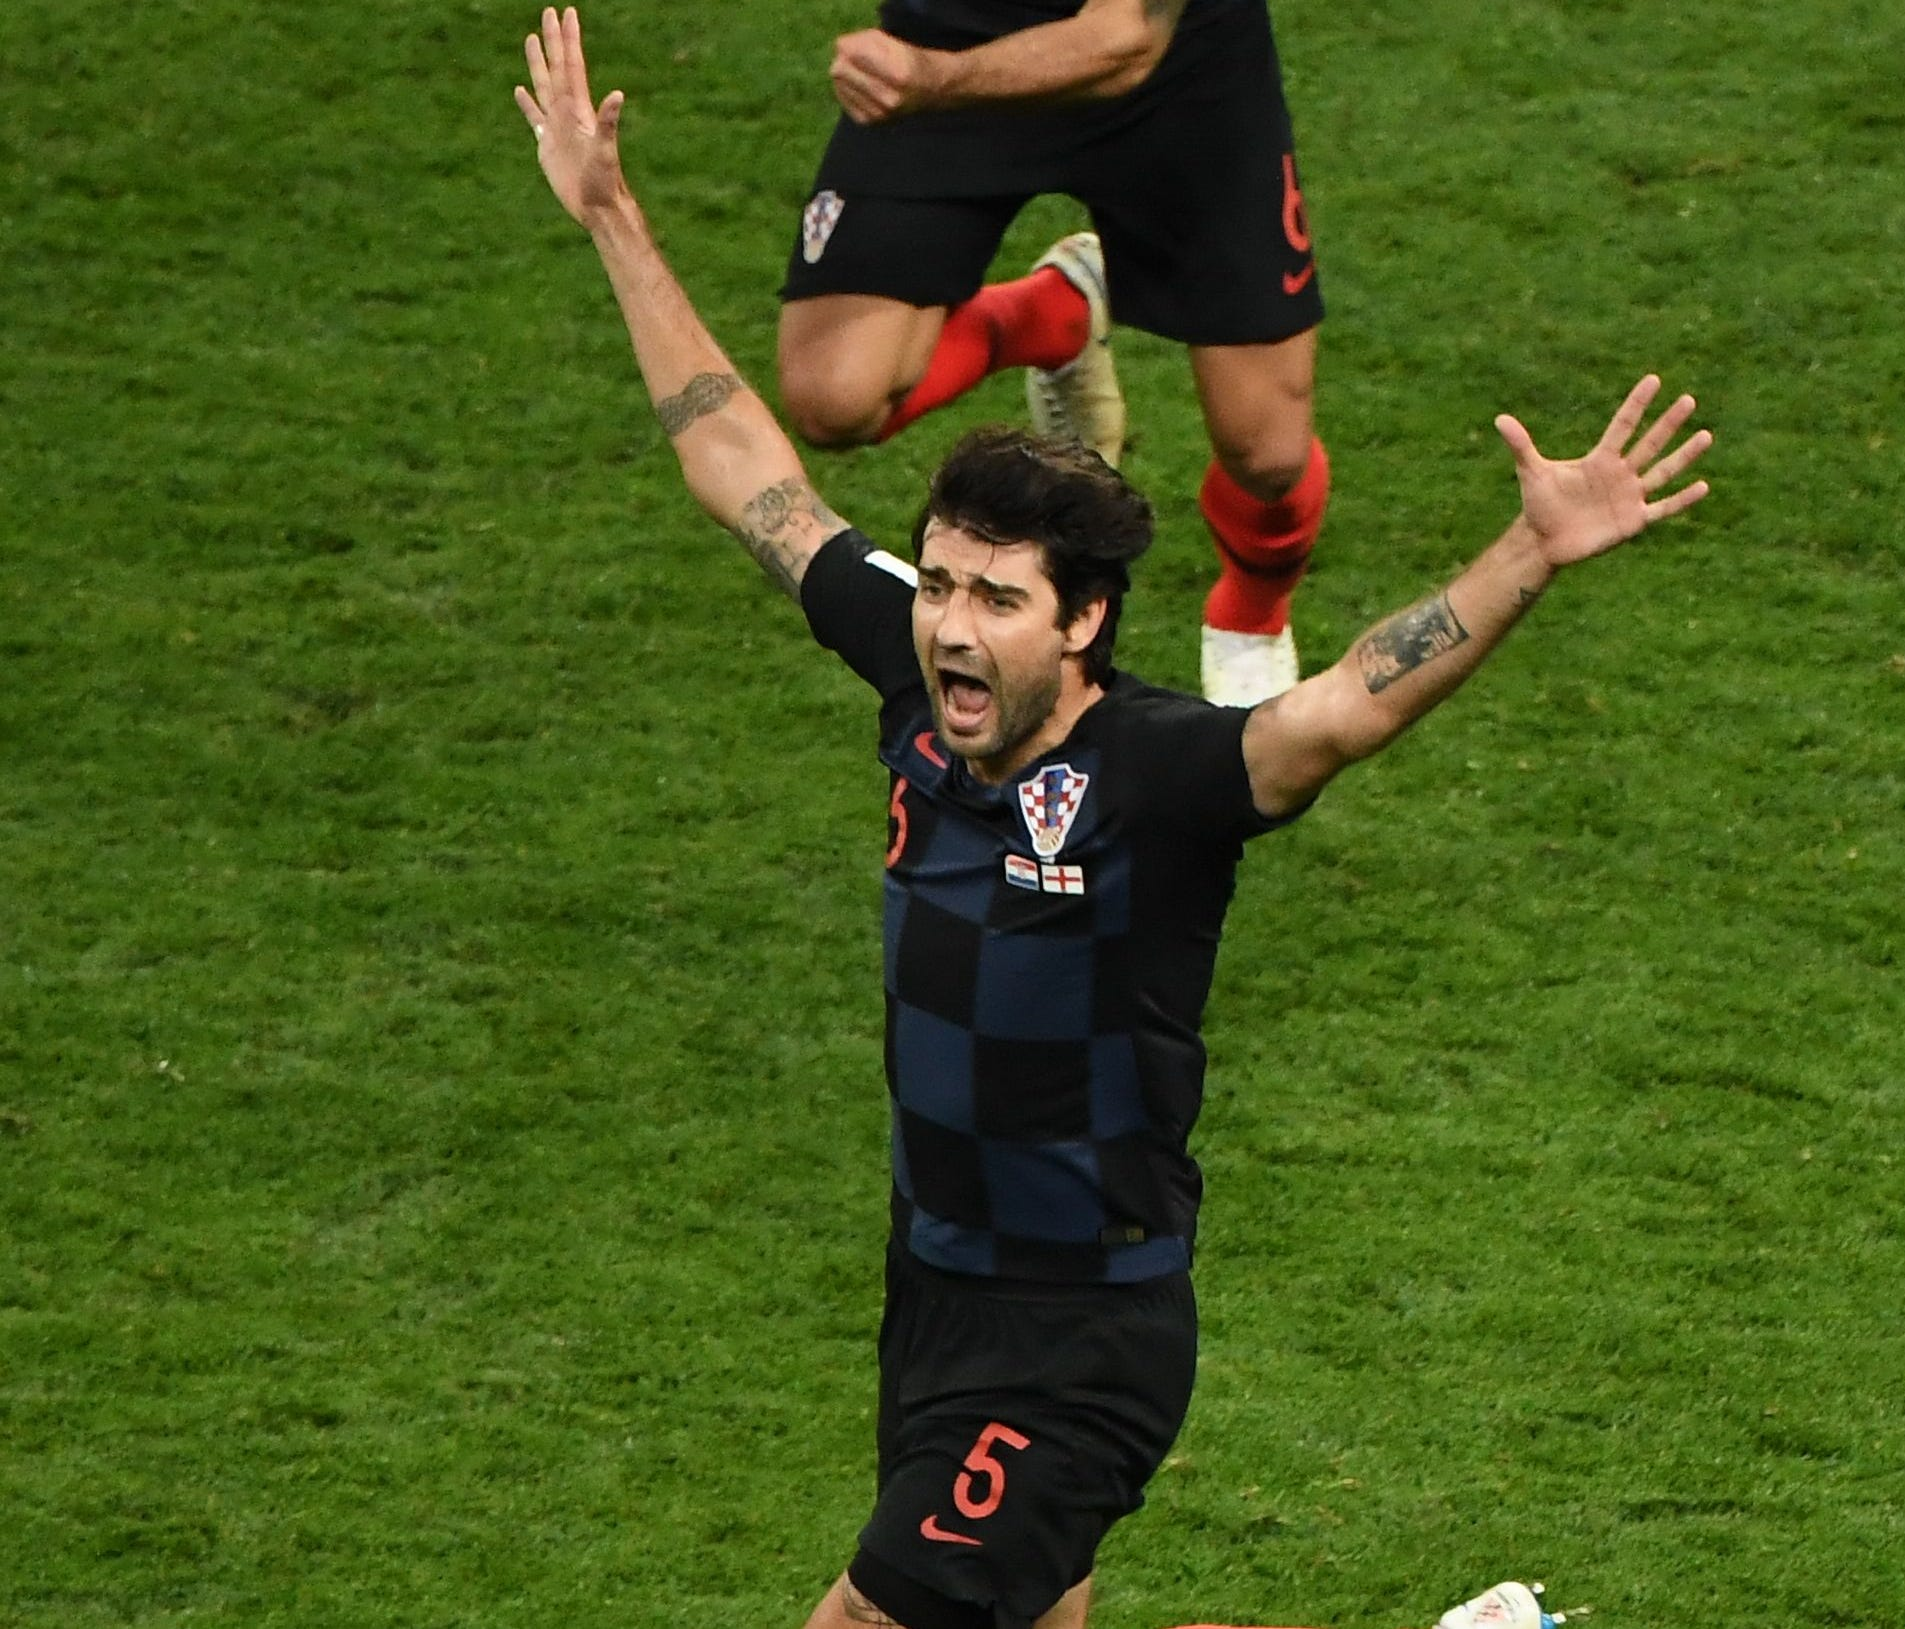 Croatia defender Vedran Corluka (bottom) and defender Dejan Lovren (top) celebrate after winning beating England to advance to the World Cup final.